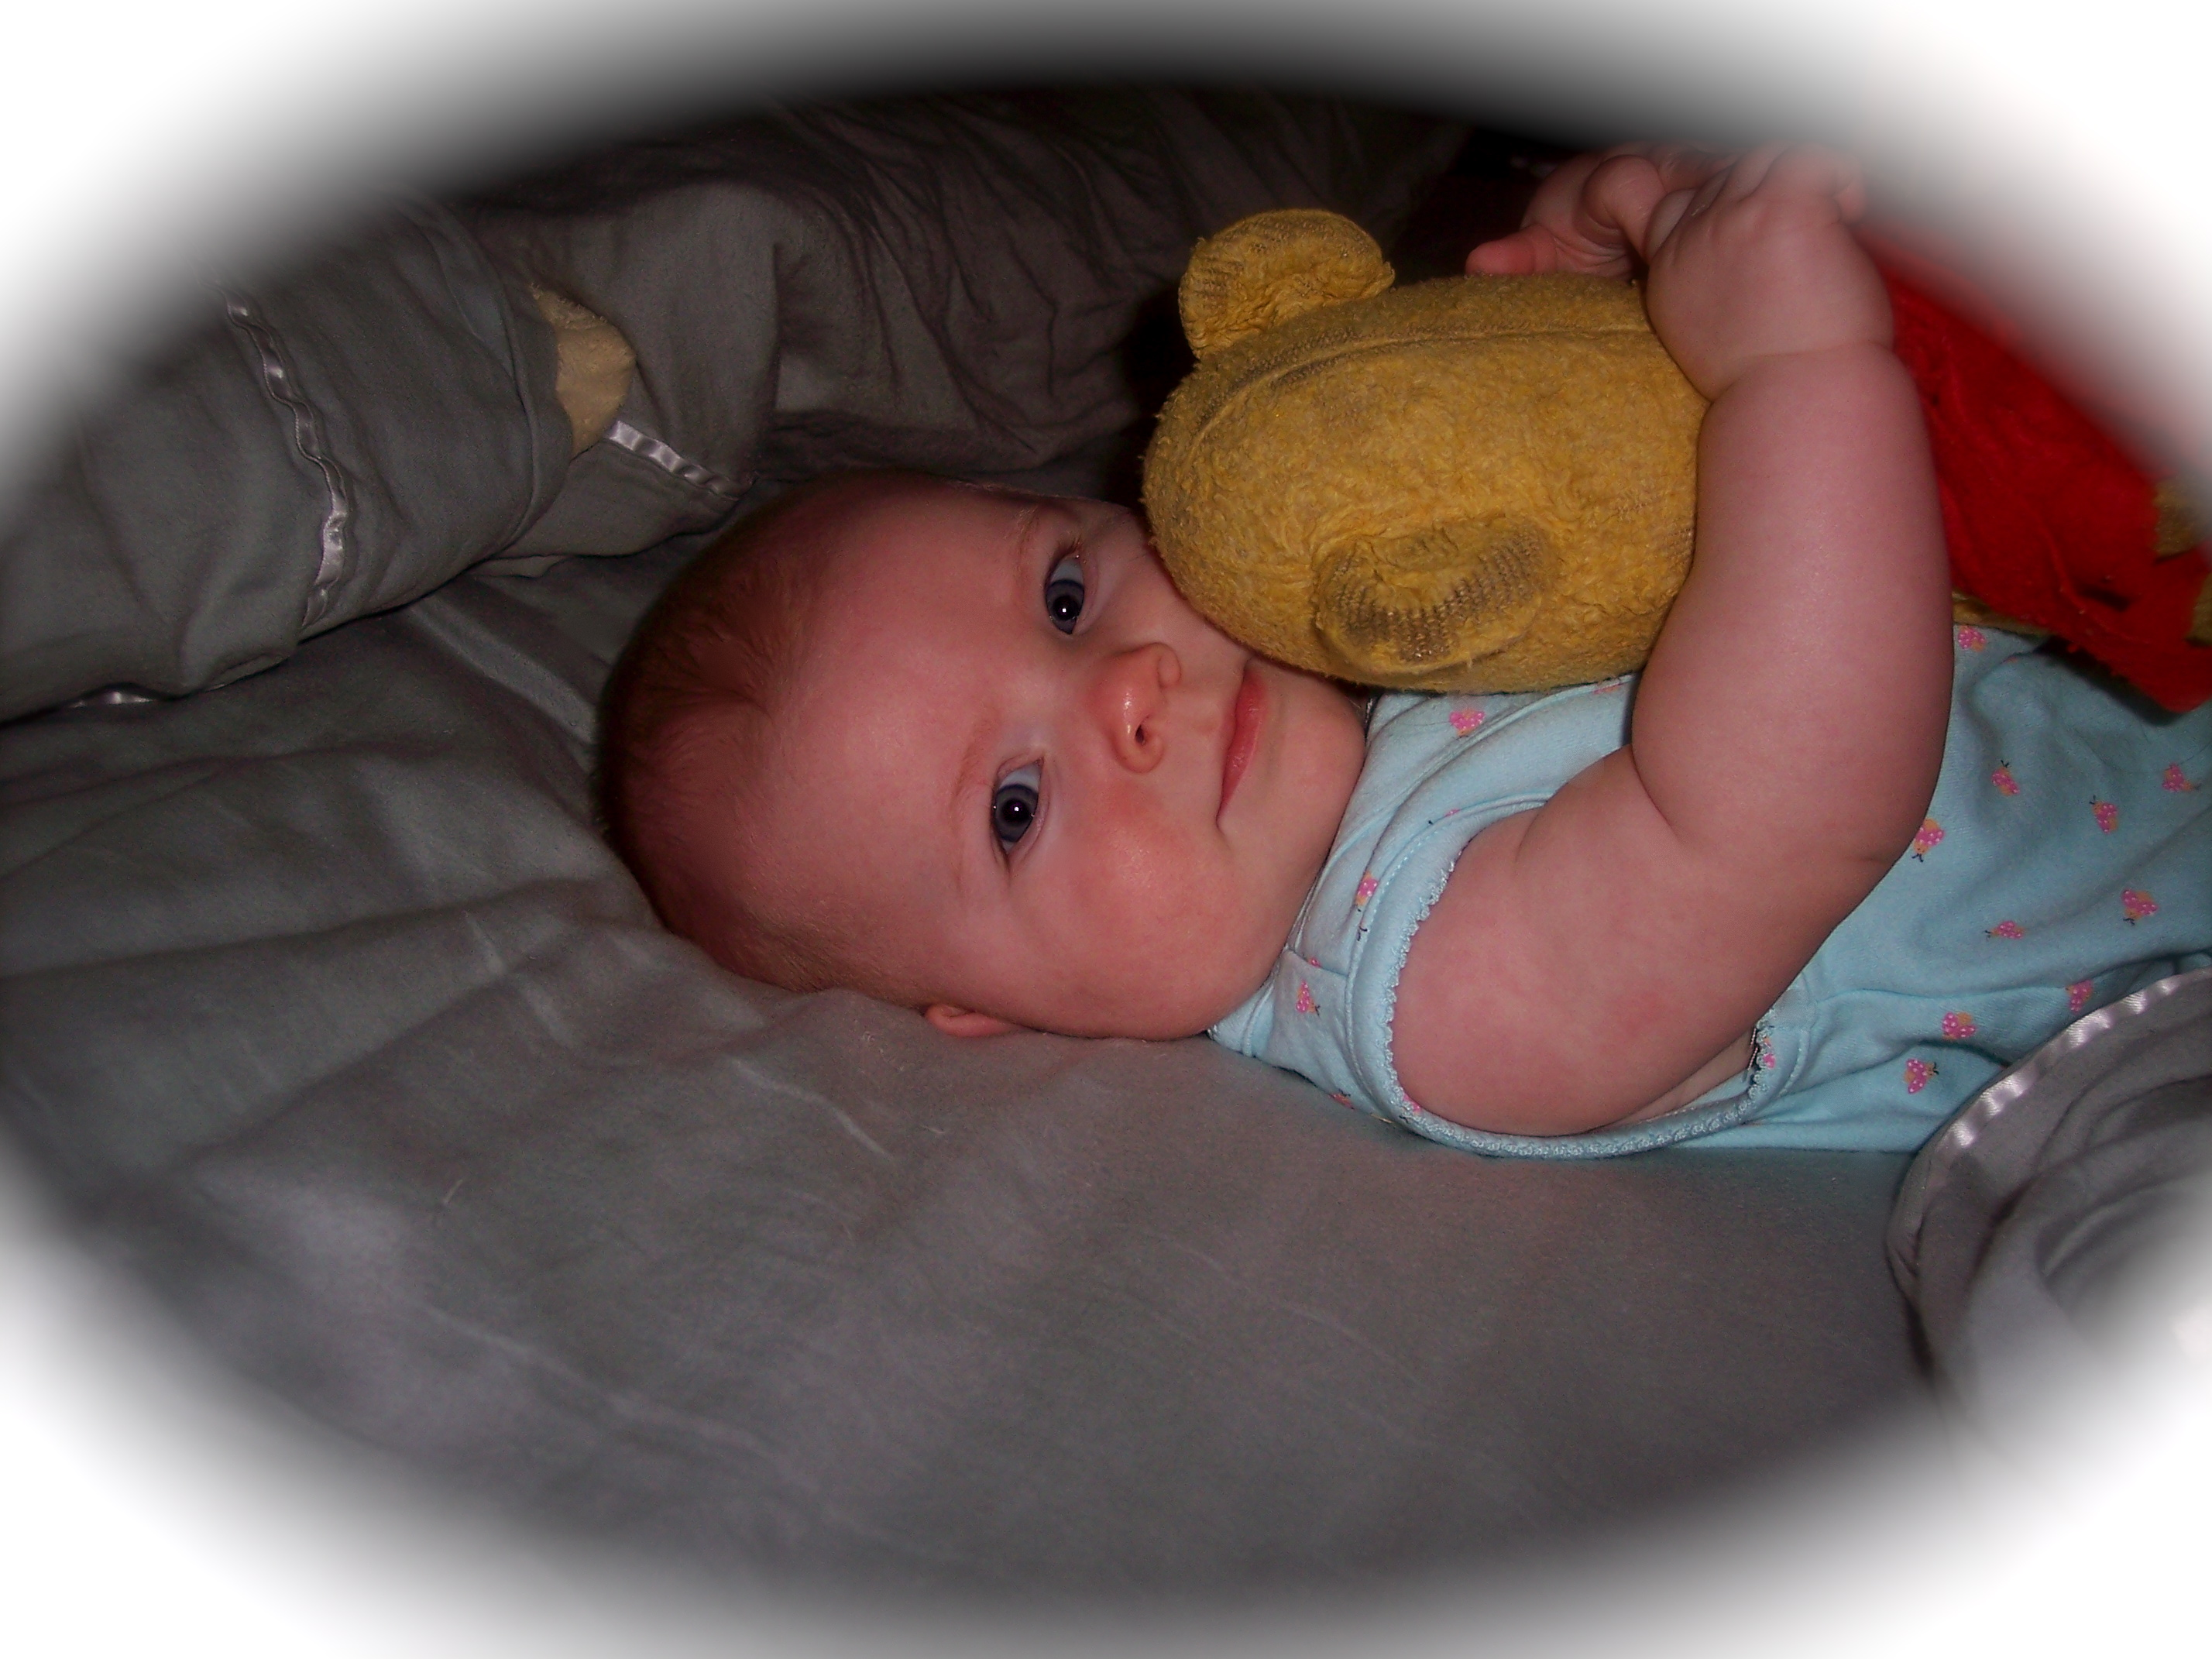 A happy, colic-free baby who received infant massage